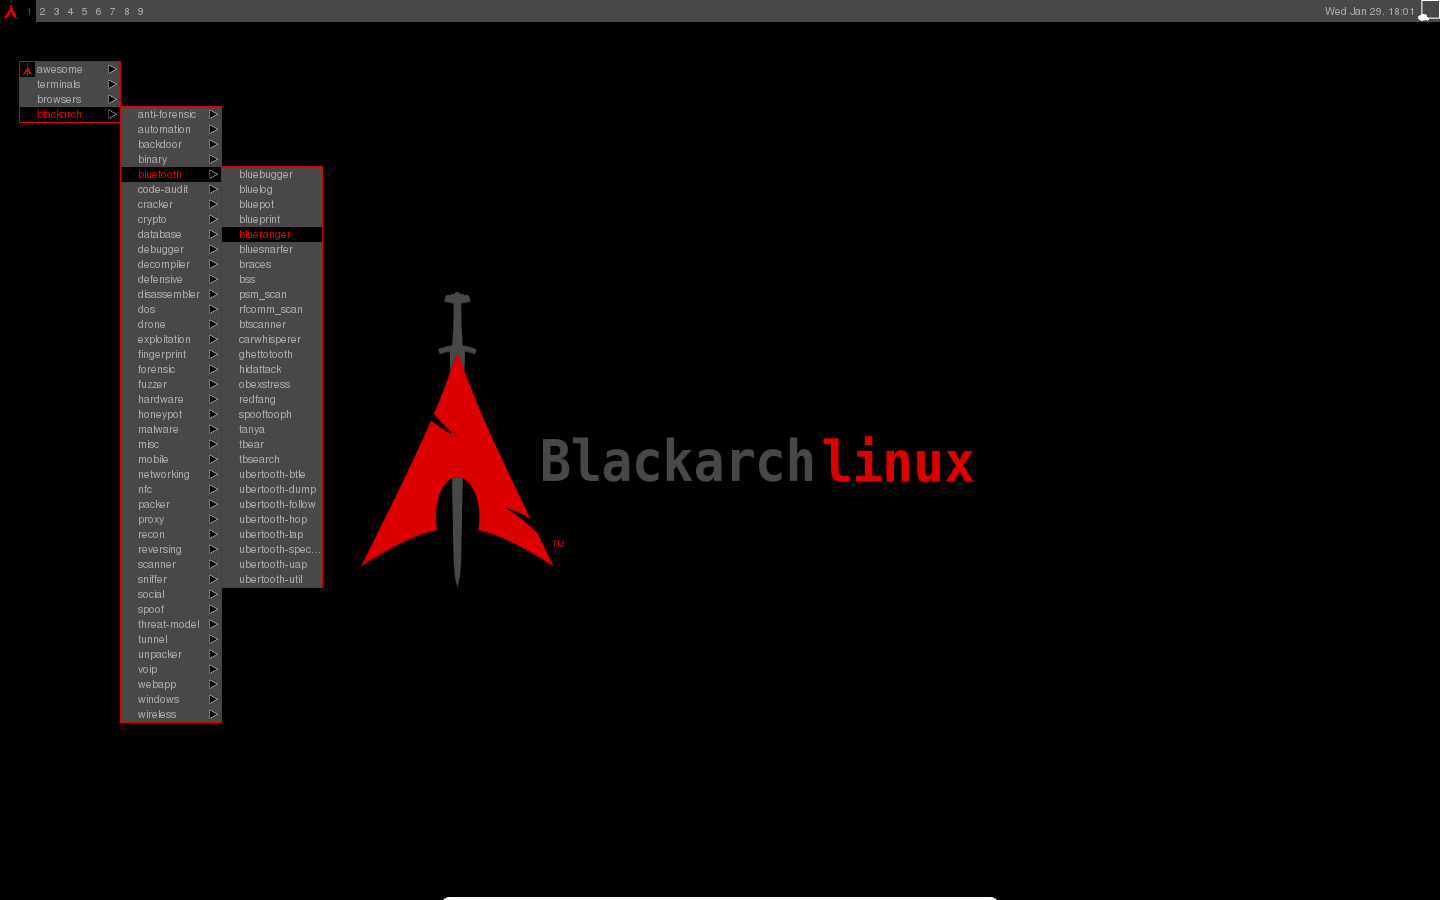 BlackArch Linux v2014 10 07 - Lightweight expansion to Arch